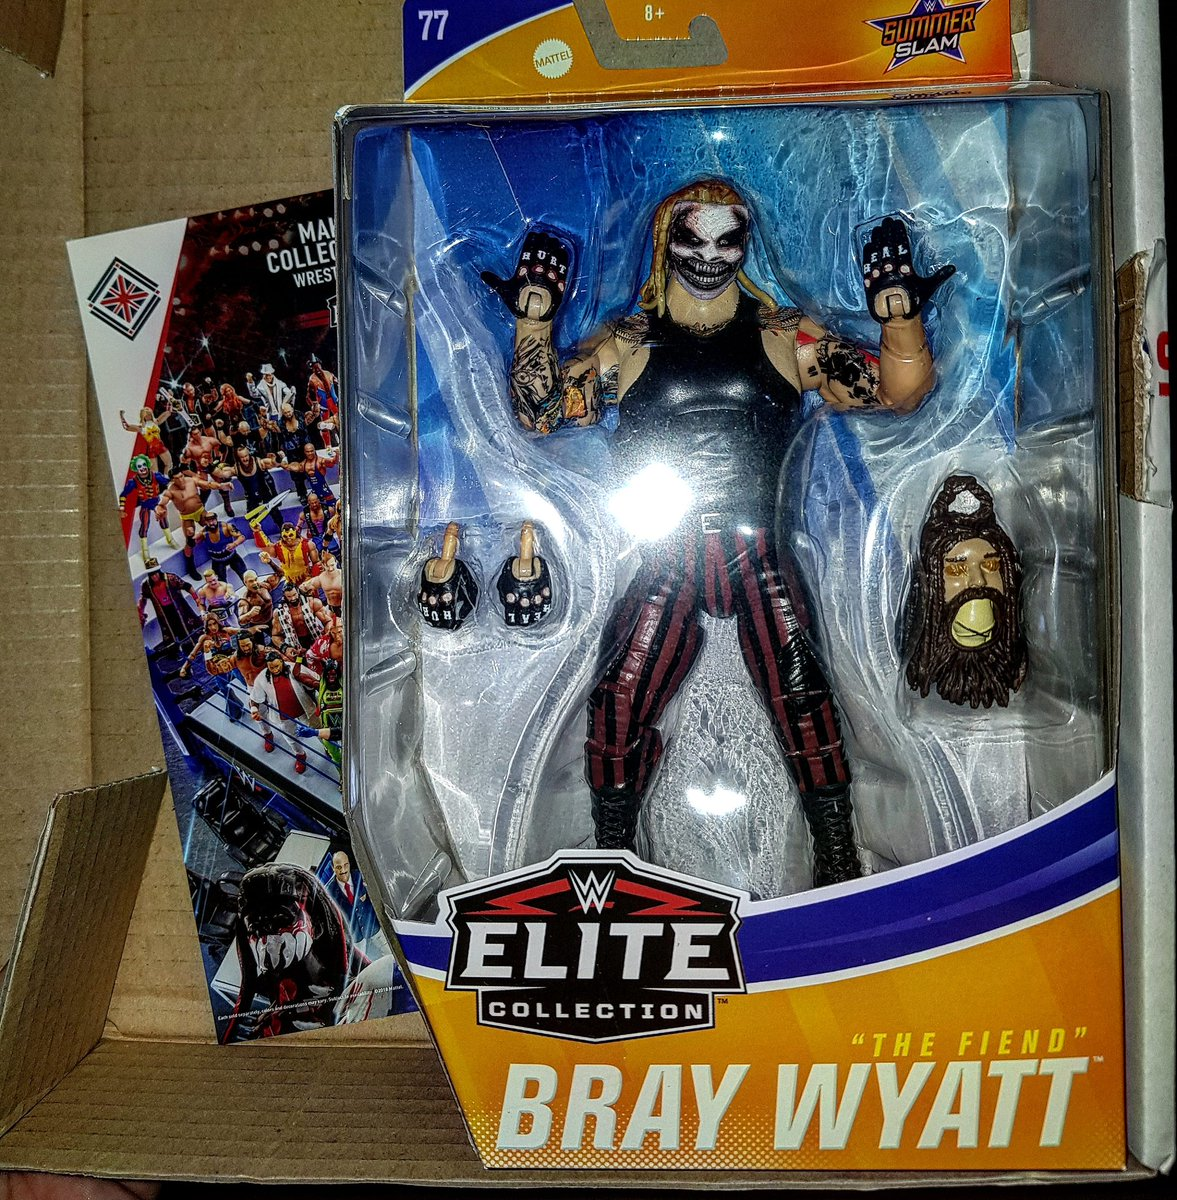 THANKYOU SO MUCH ONCE AGAIN @wrestlingshop I TOLD MY SON THEY WERE ALL SOLD OUT ABD HE WAS SO GOOD ABOUT  IT HES GONNA FLIP HIS LID THANKYOU FOR THE FAST DELIVERY AND GREAT  SERVICES AS ALWAYS THIS PLACE IS MY ONE STOP SHOP FOR ALL WRESTLING FIGURES @WWEBrayWyatt @BrayWyatt1977<br>http://pic.twitter.com/sY2RBp4BZb